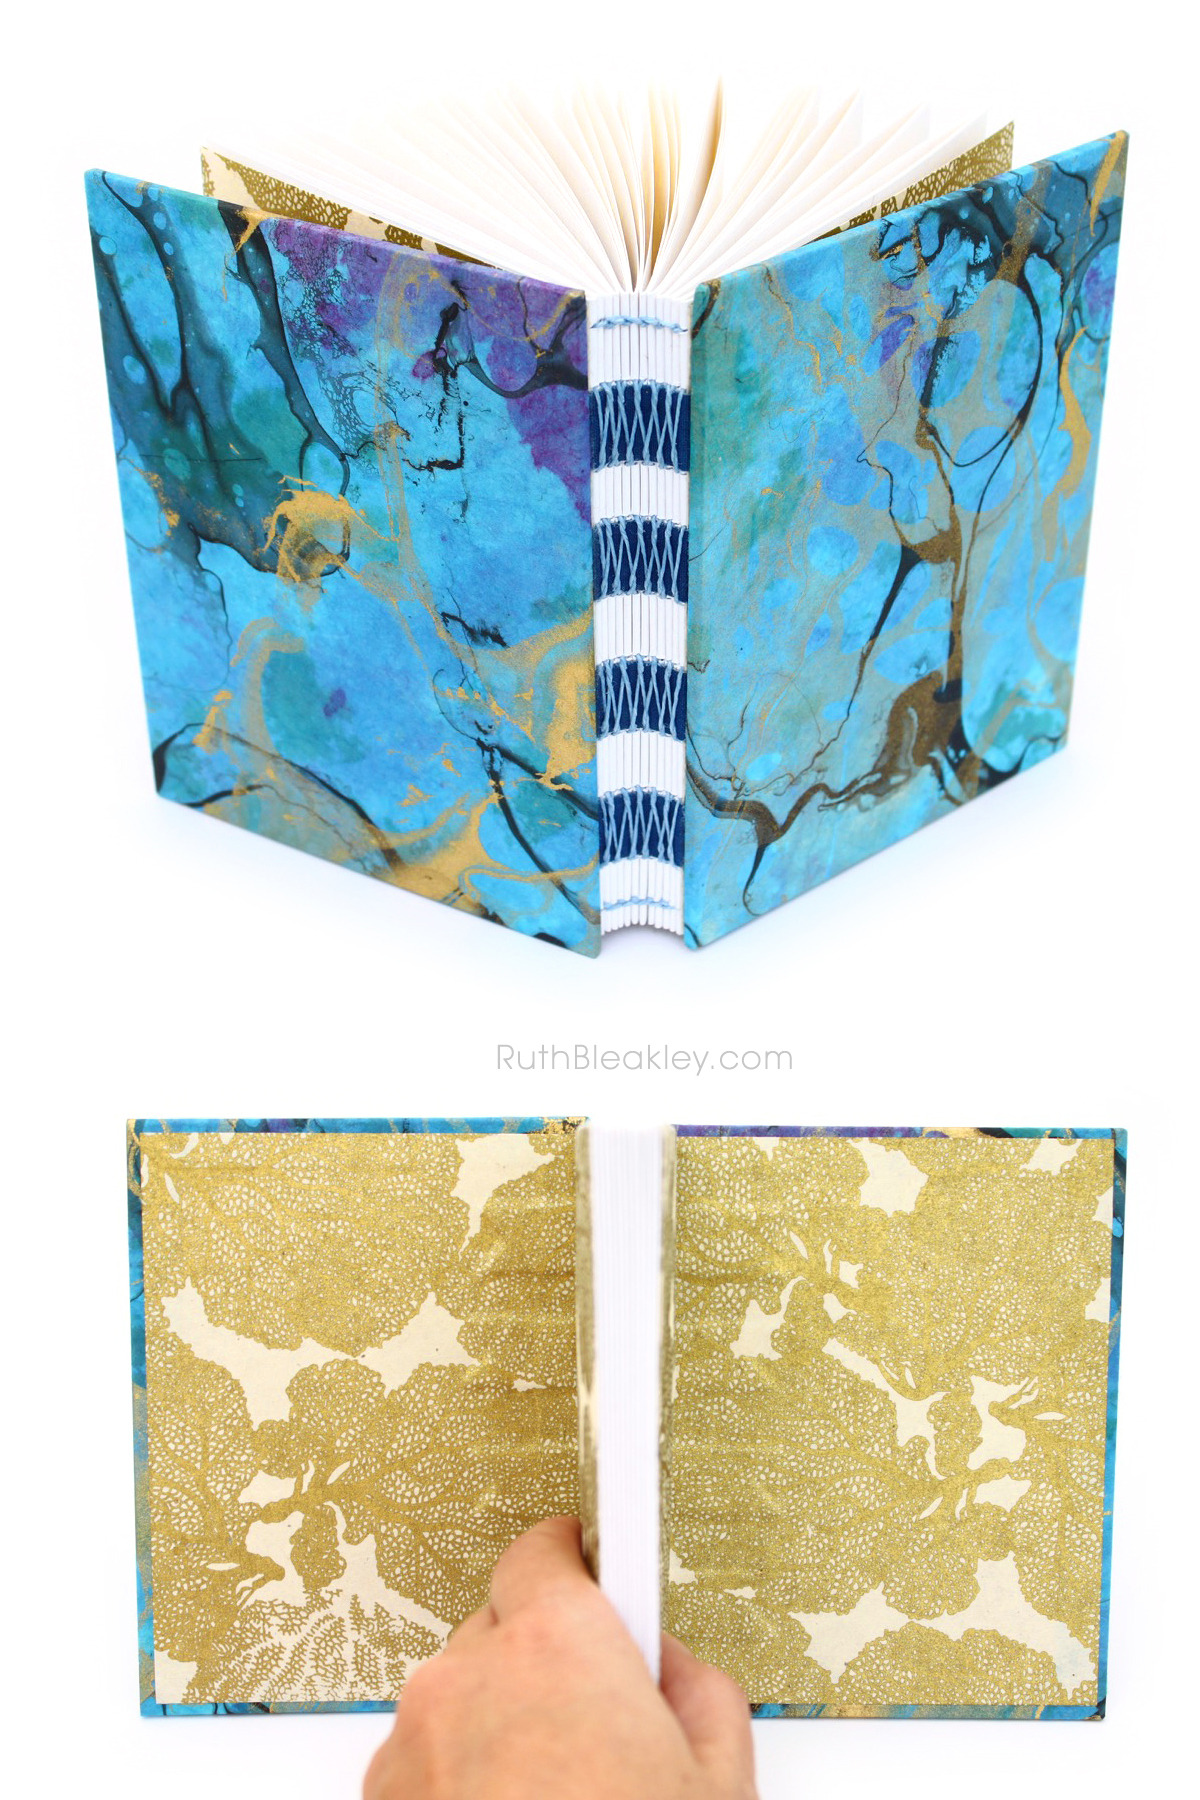 Blue-Marbled-French-Link-Journal-made-by-Ruth-Bleakley